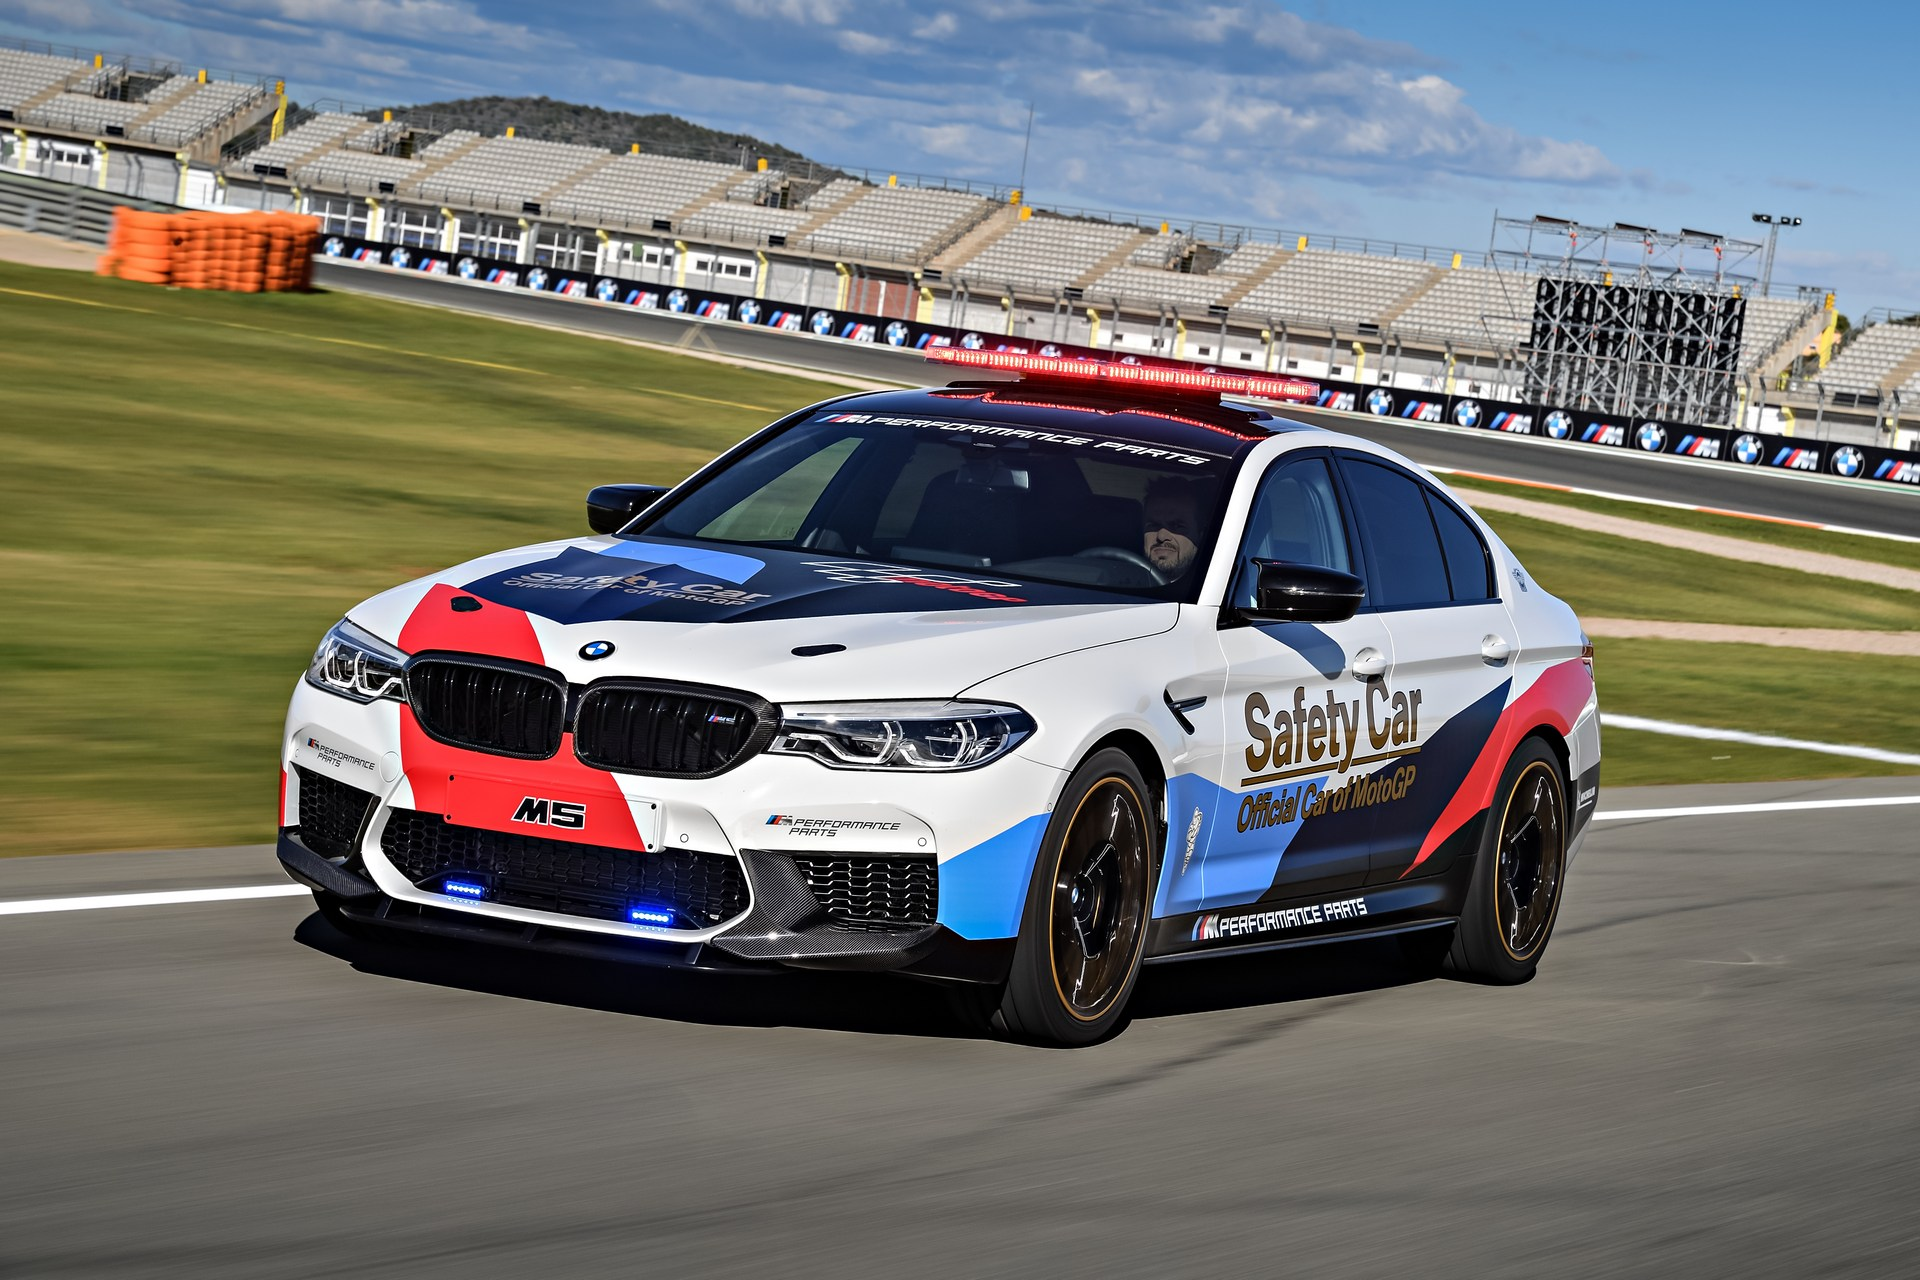 BMW_M5_Safety_Car_0005